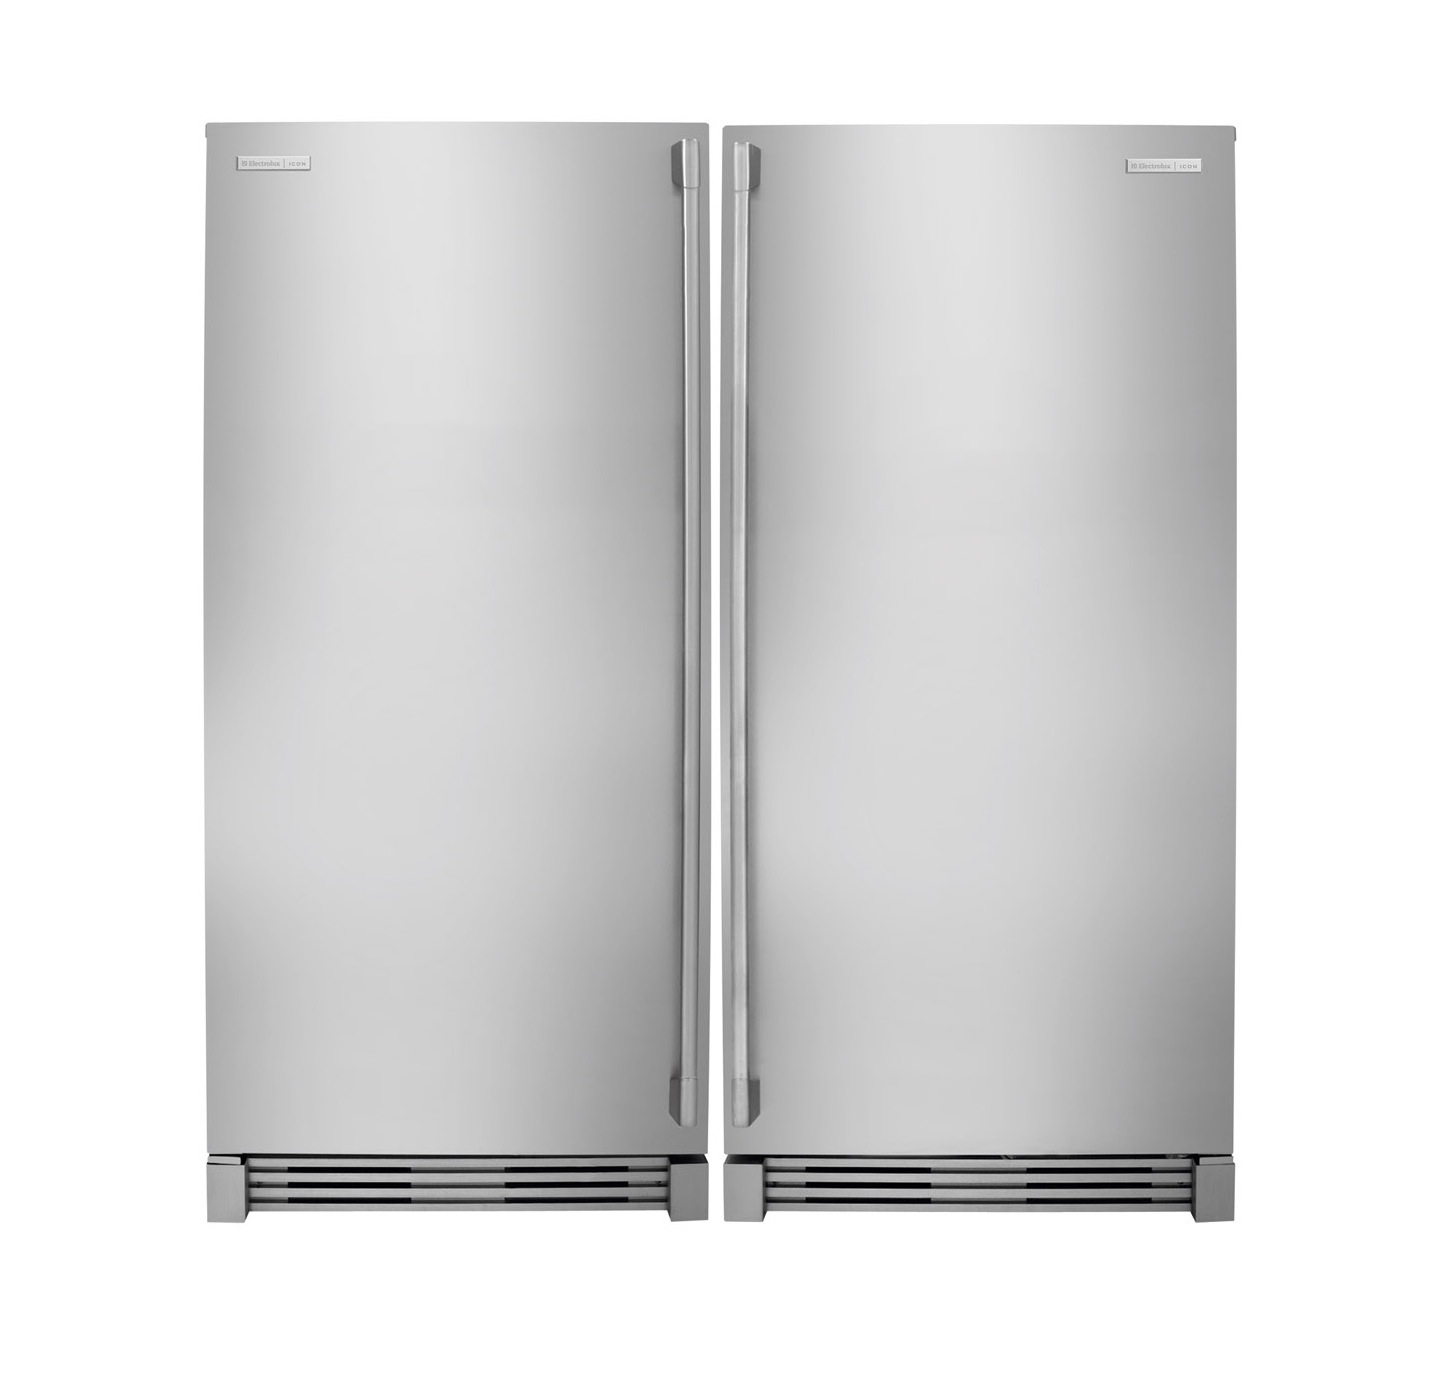 New Electrolux Icon Stainless Steel Refrigerator Freezer Combo with Trimkit